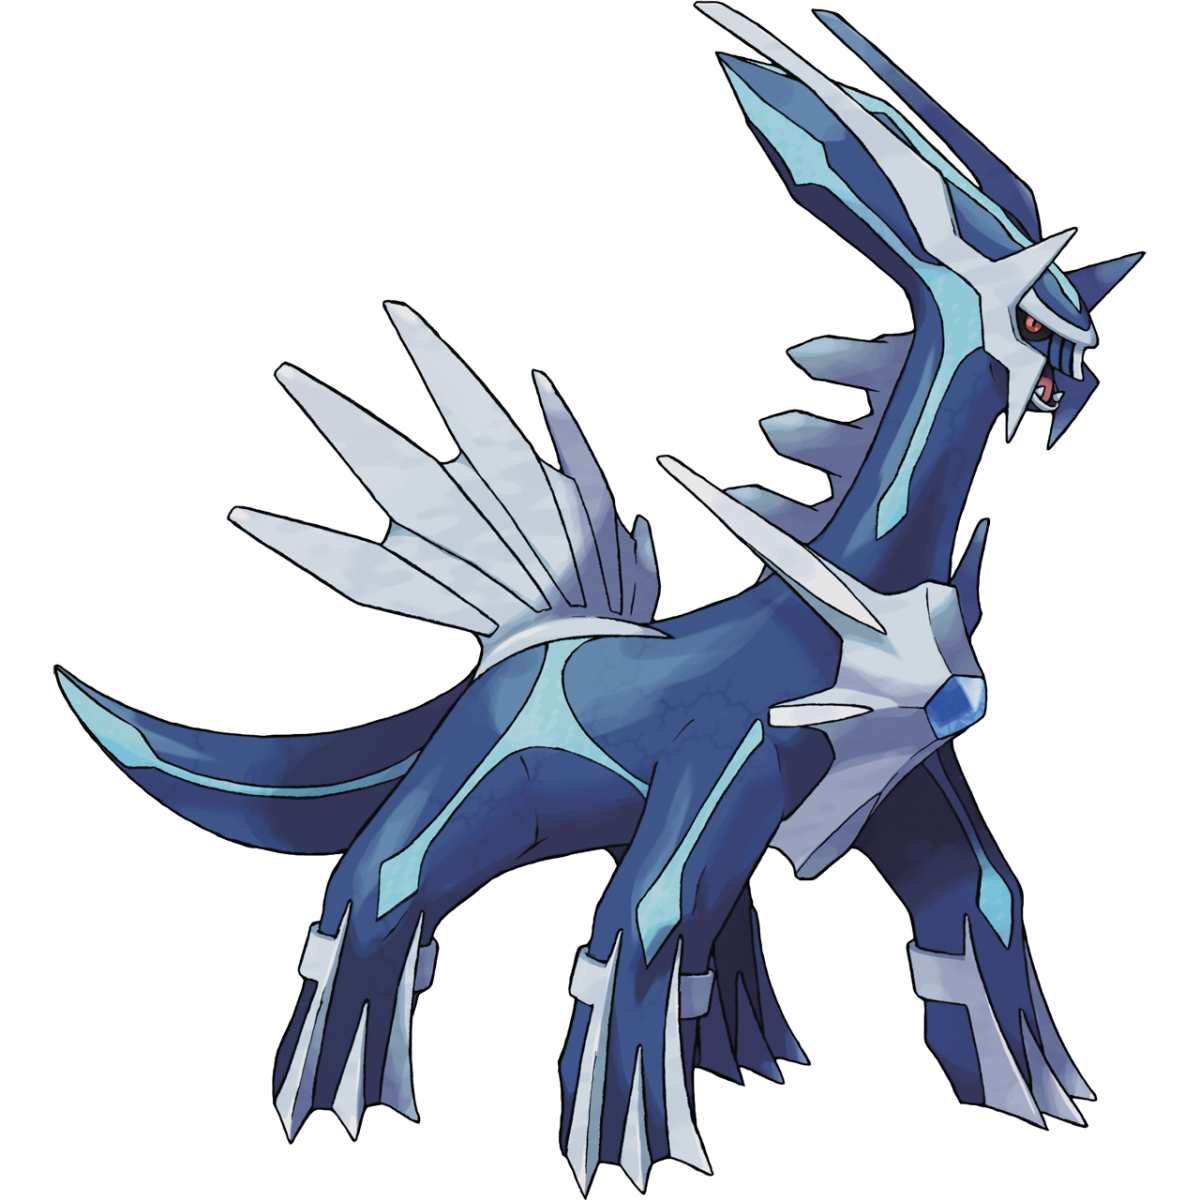 Legend tells of how Arceus made Dialga along with the others in this list.